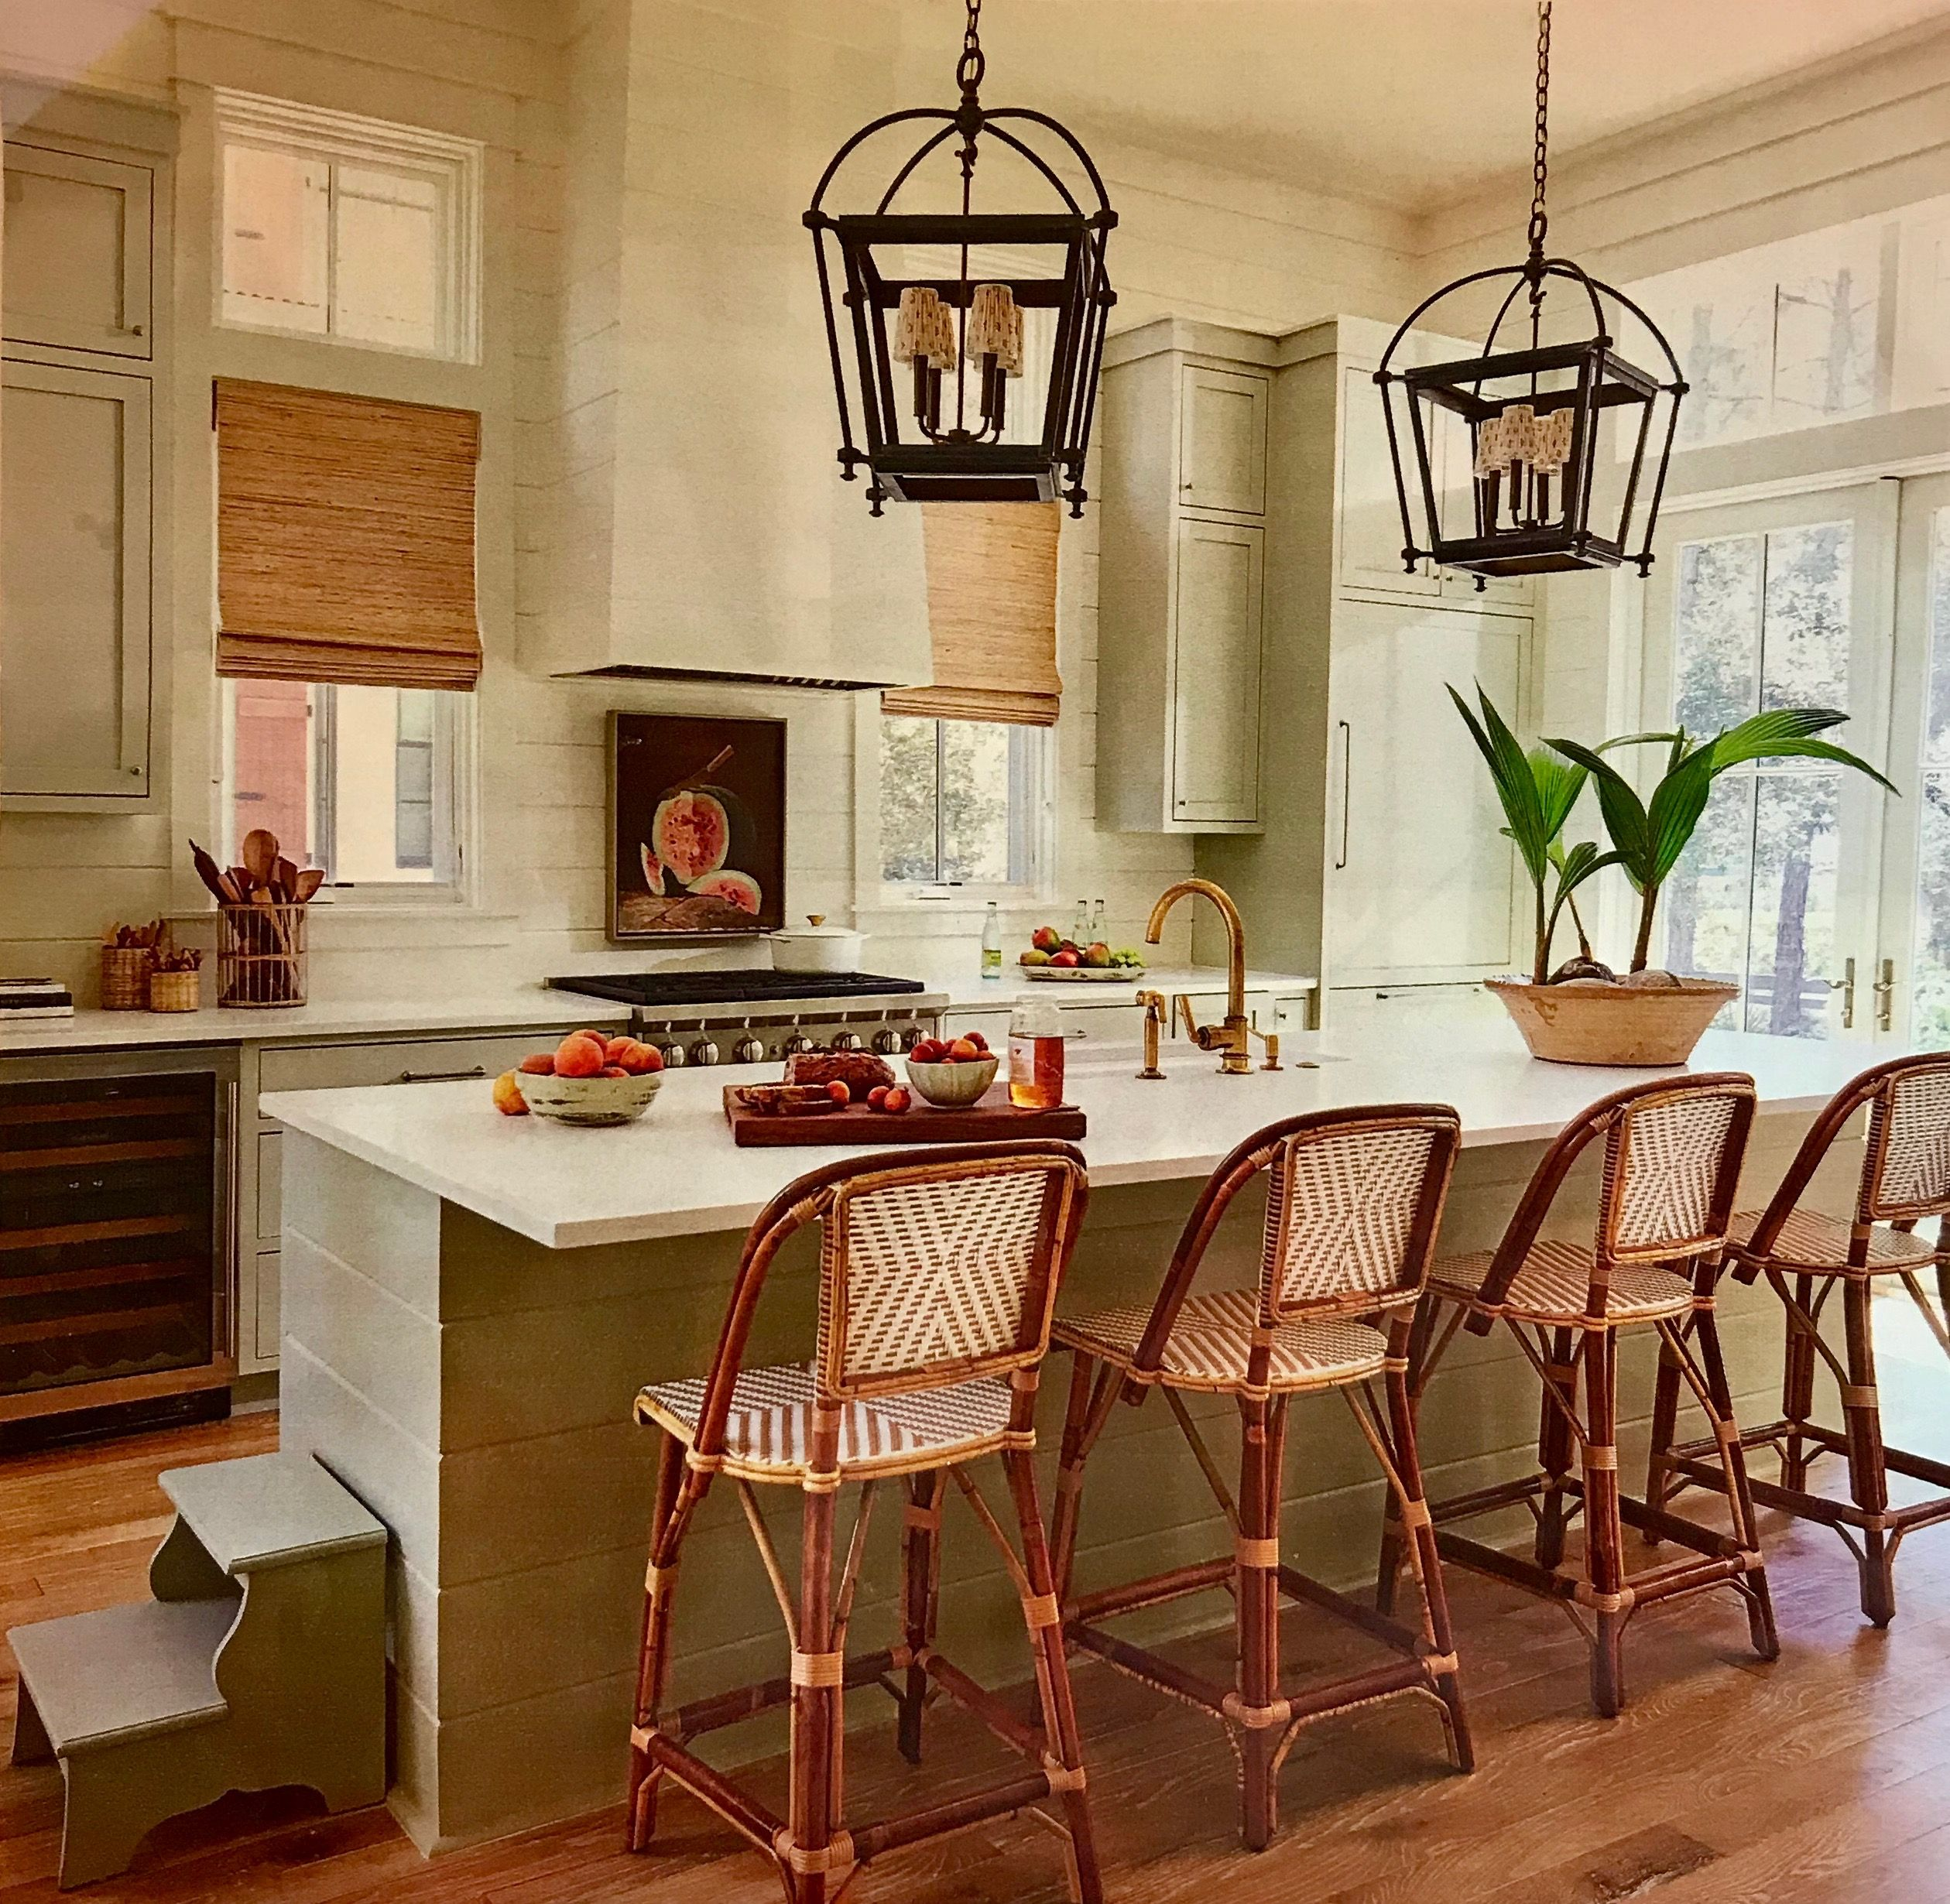 Southern Style Decorating Ideas From Southern Living: Southern Living Magazine - September 2019